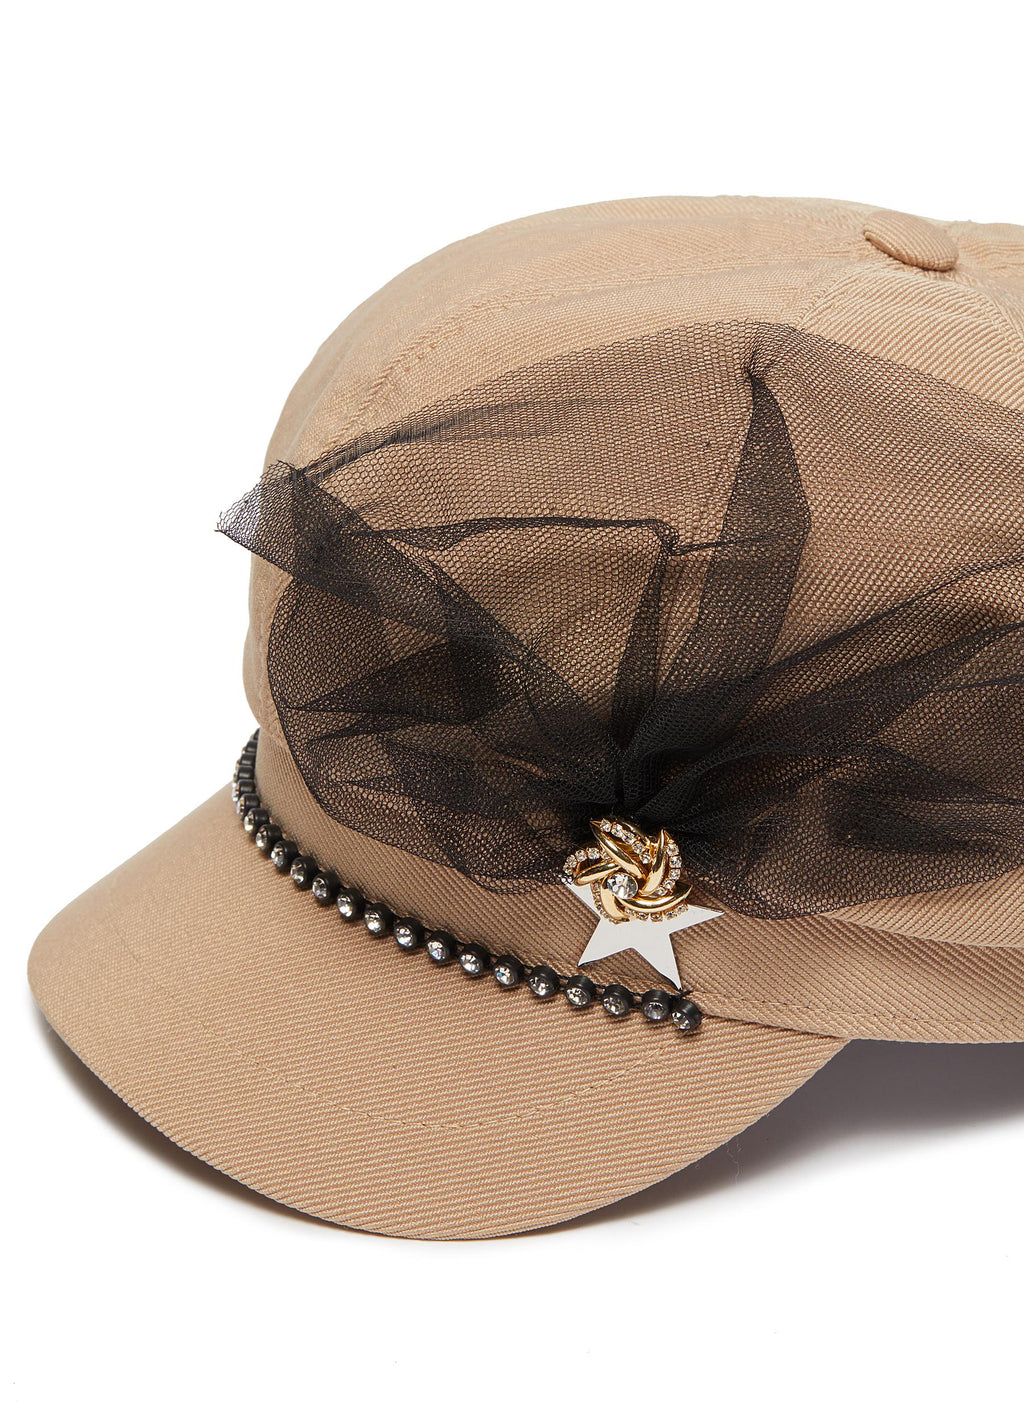 MESH EMBELLISHED PIN TWILL NEWSBOY CAP